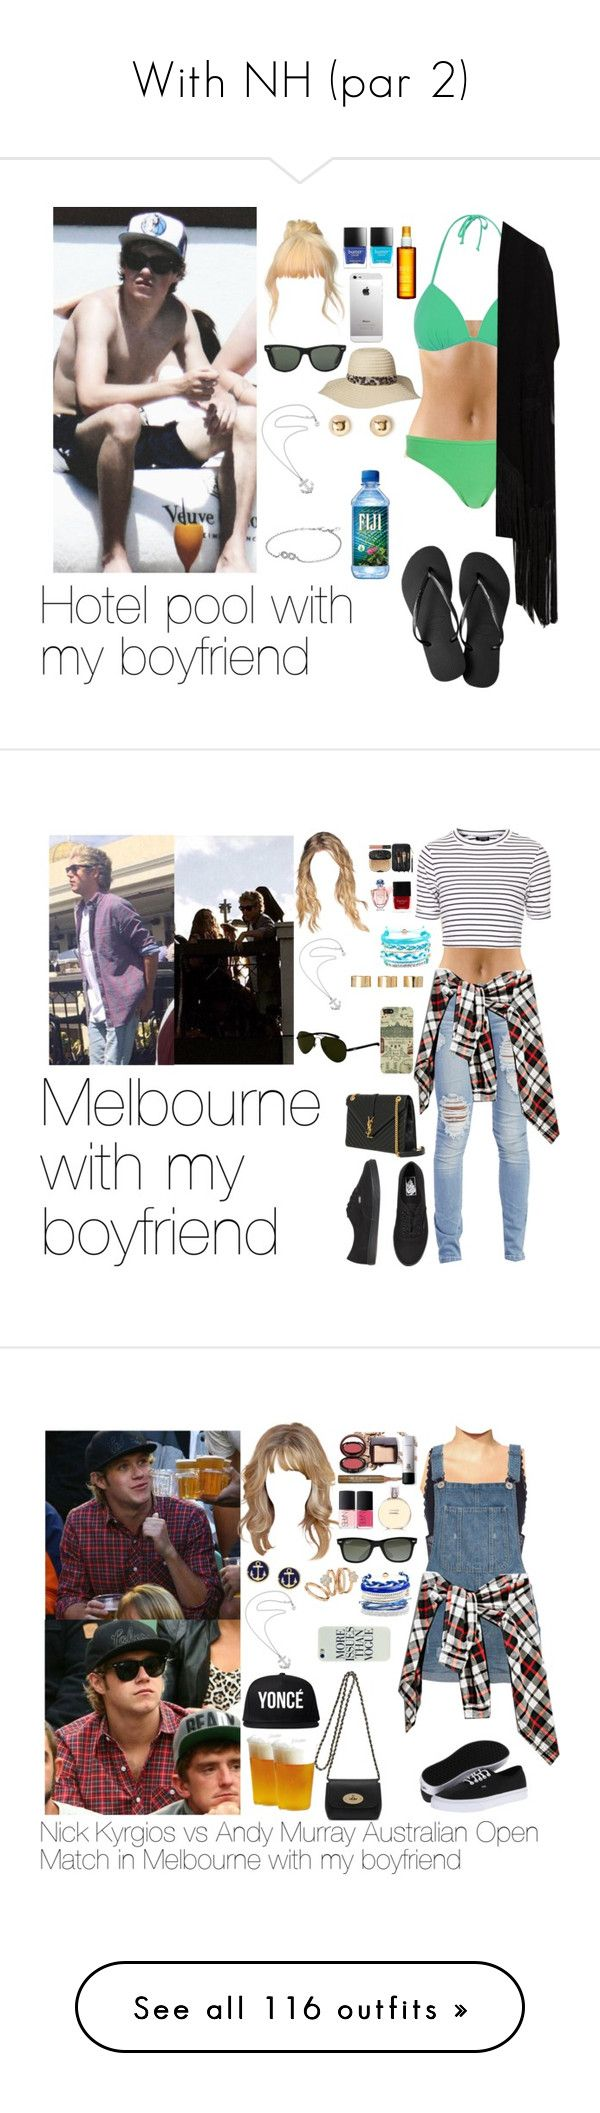 """""""With NH (par 2)"""" by myllenna-malik ❤ liked on Polyvore featuring NiallHoran, River Island, Chicnova Fashion, Havaianas, Ray-Ban, Butter London, Clarins, Forever 21, Karen Walker and Pandora"""